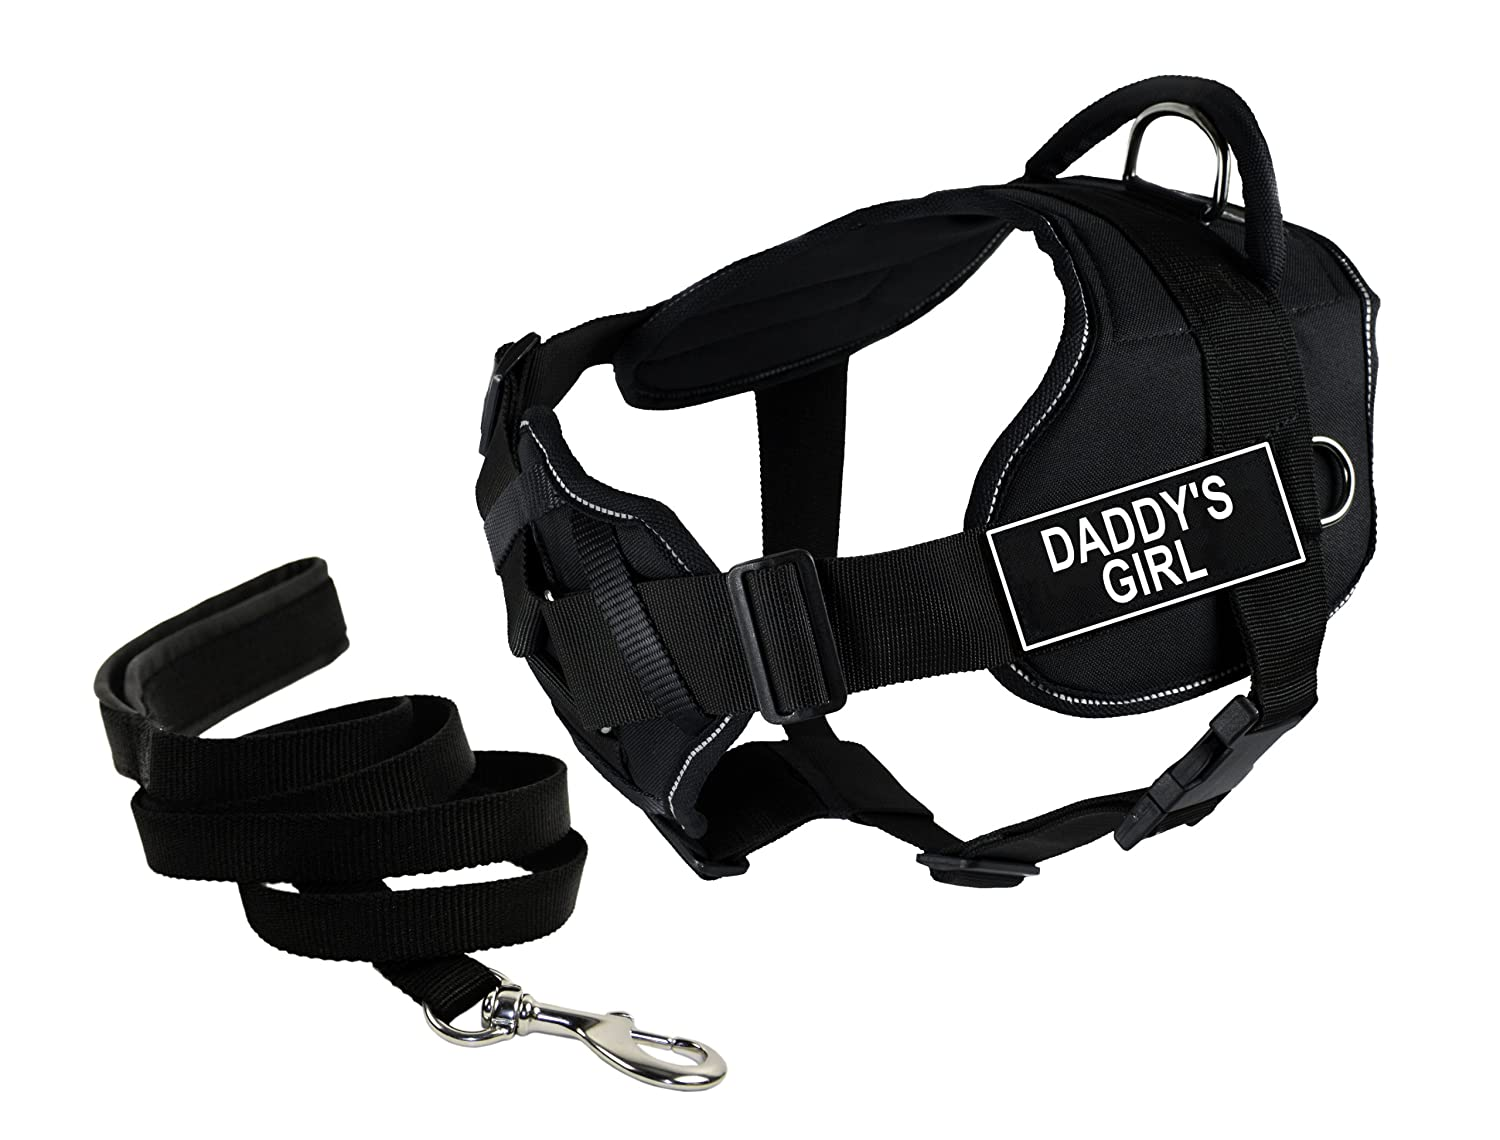 Dean & Tyler's DT Fun Chest Support DADDY'S GIRL Harness with Reflective Trim, Medium, and 6 ft Padded Puppy Leash.